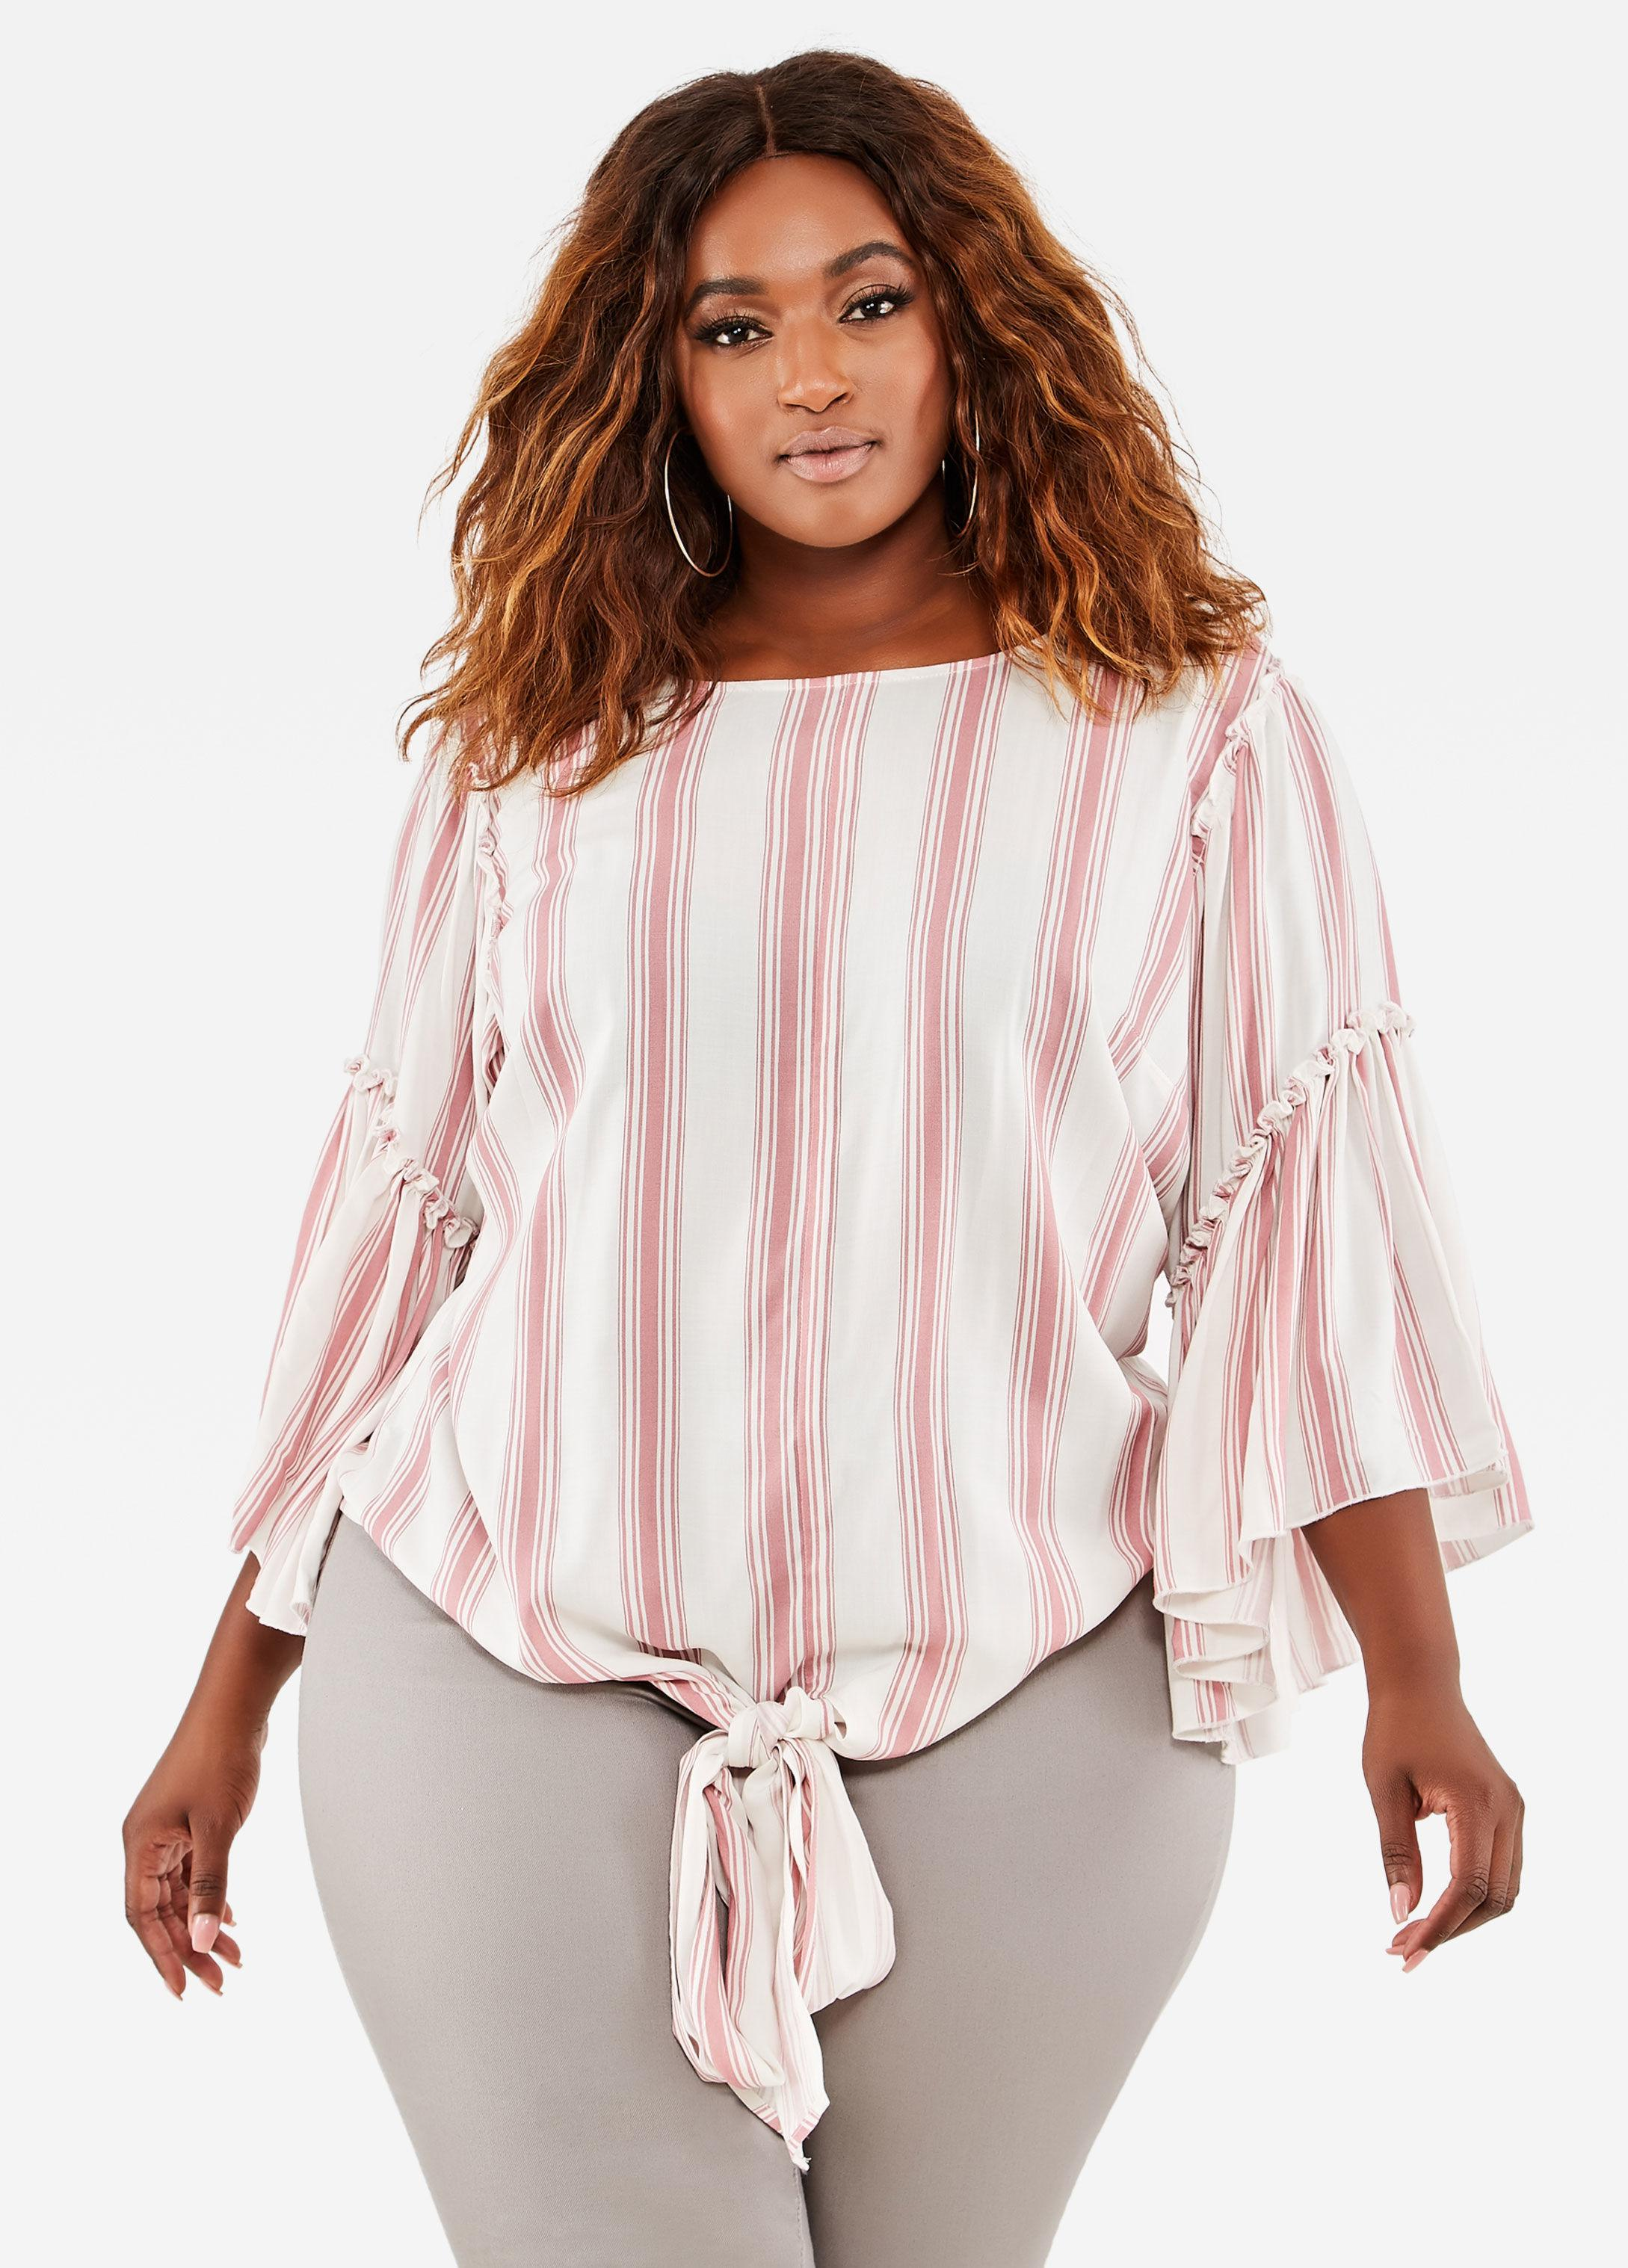 fb8d522afe389 Lyst - Ashley Stewart Plus Size Striped Tie Front Top in Pink